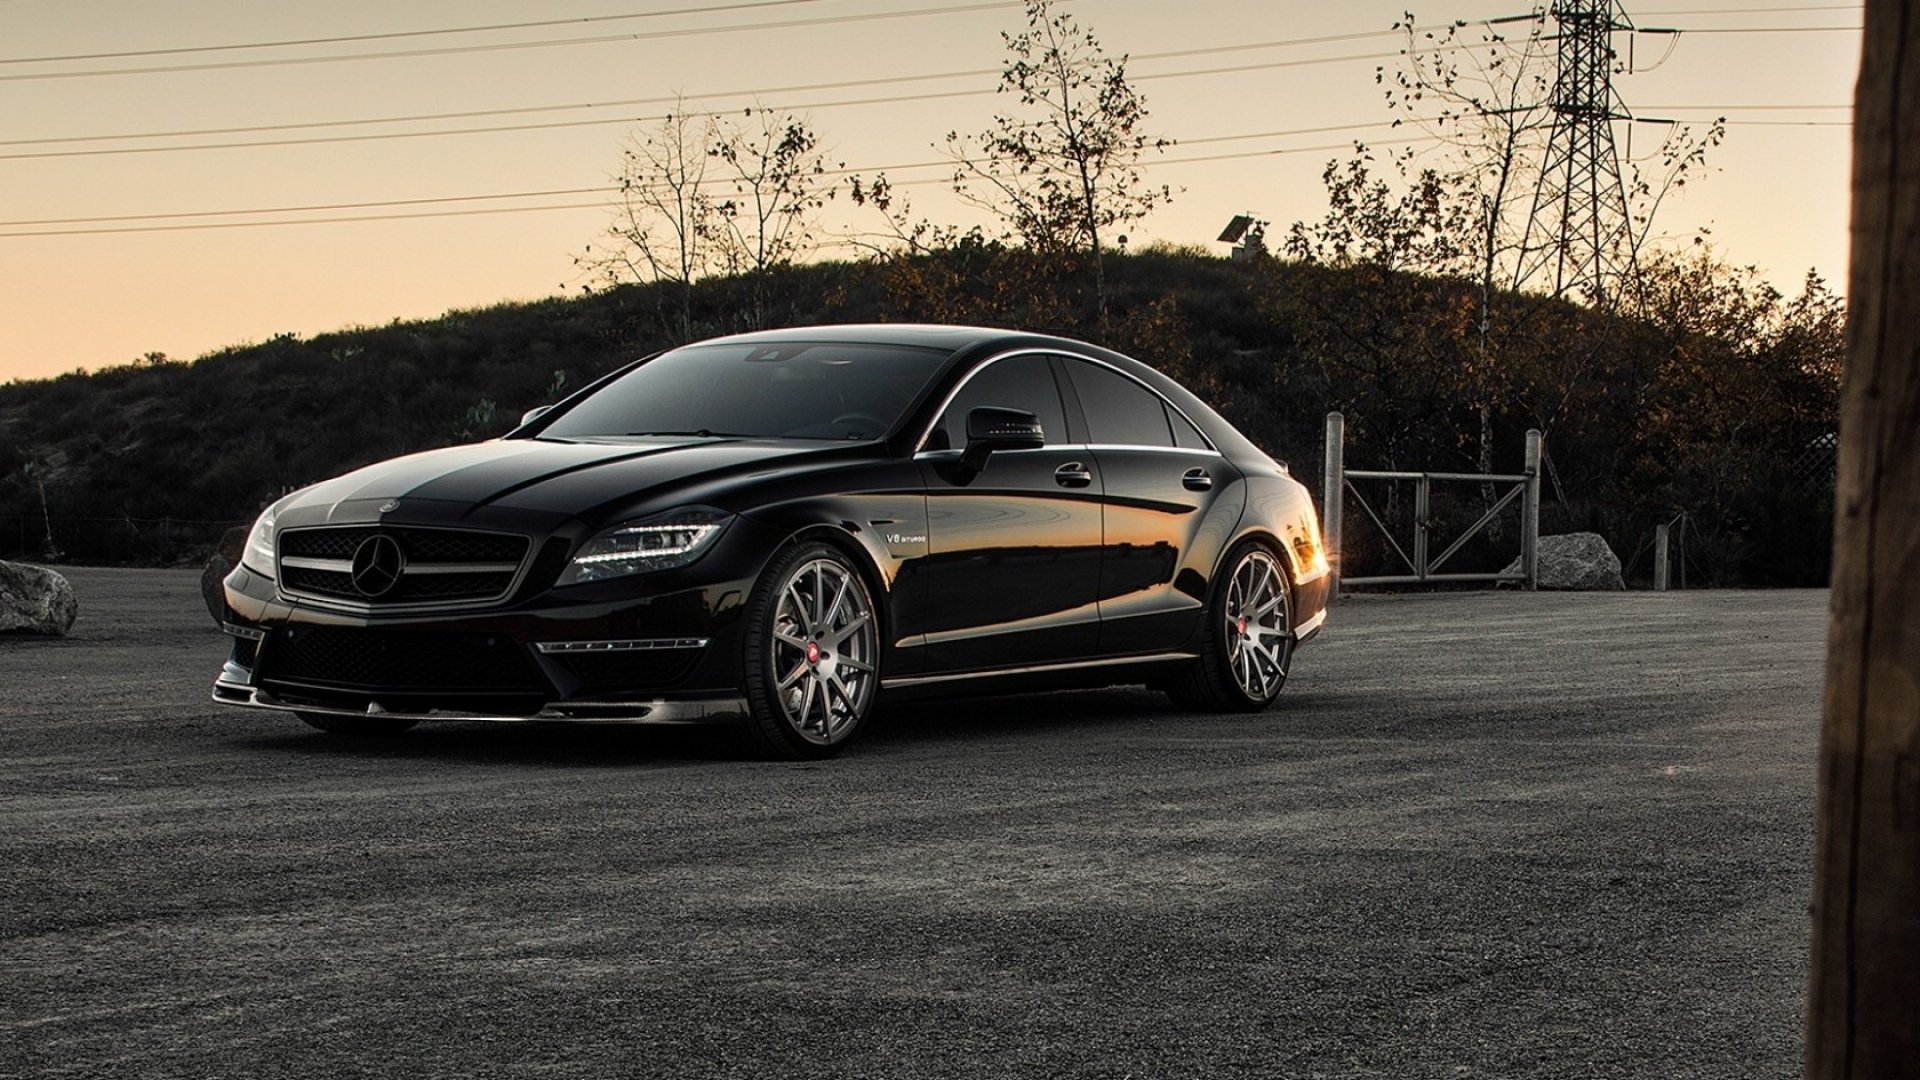 95+ Mercedes Clase CLS Wallpapers on WallpaperSafari